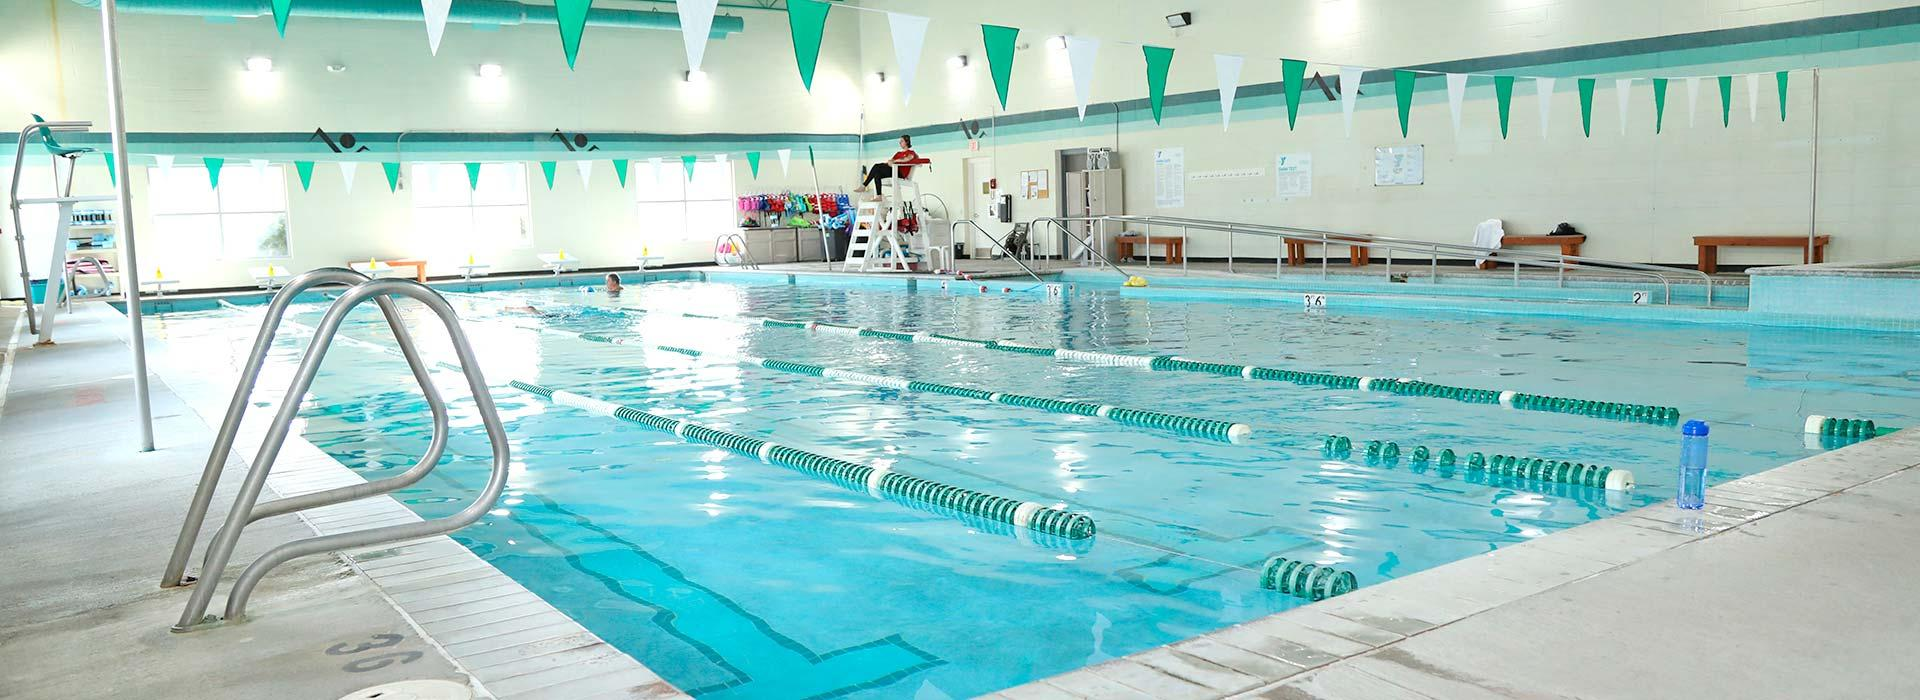 Indoor pool at the Eastern Shore Family YMCA